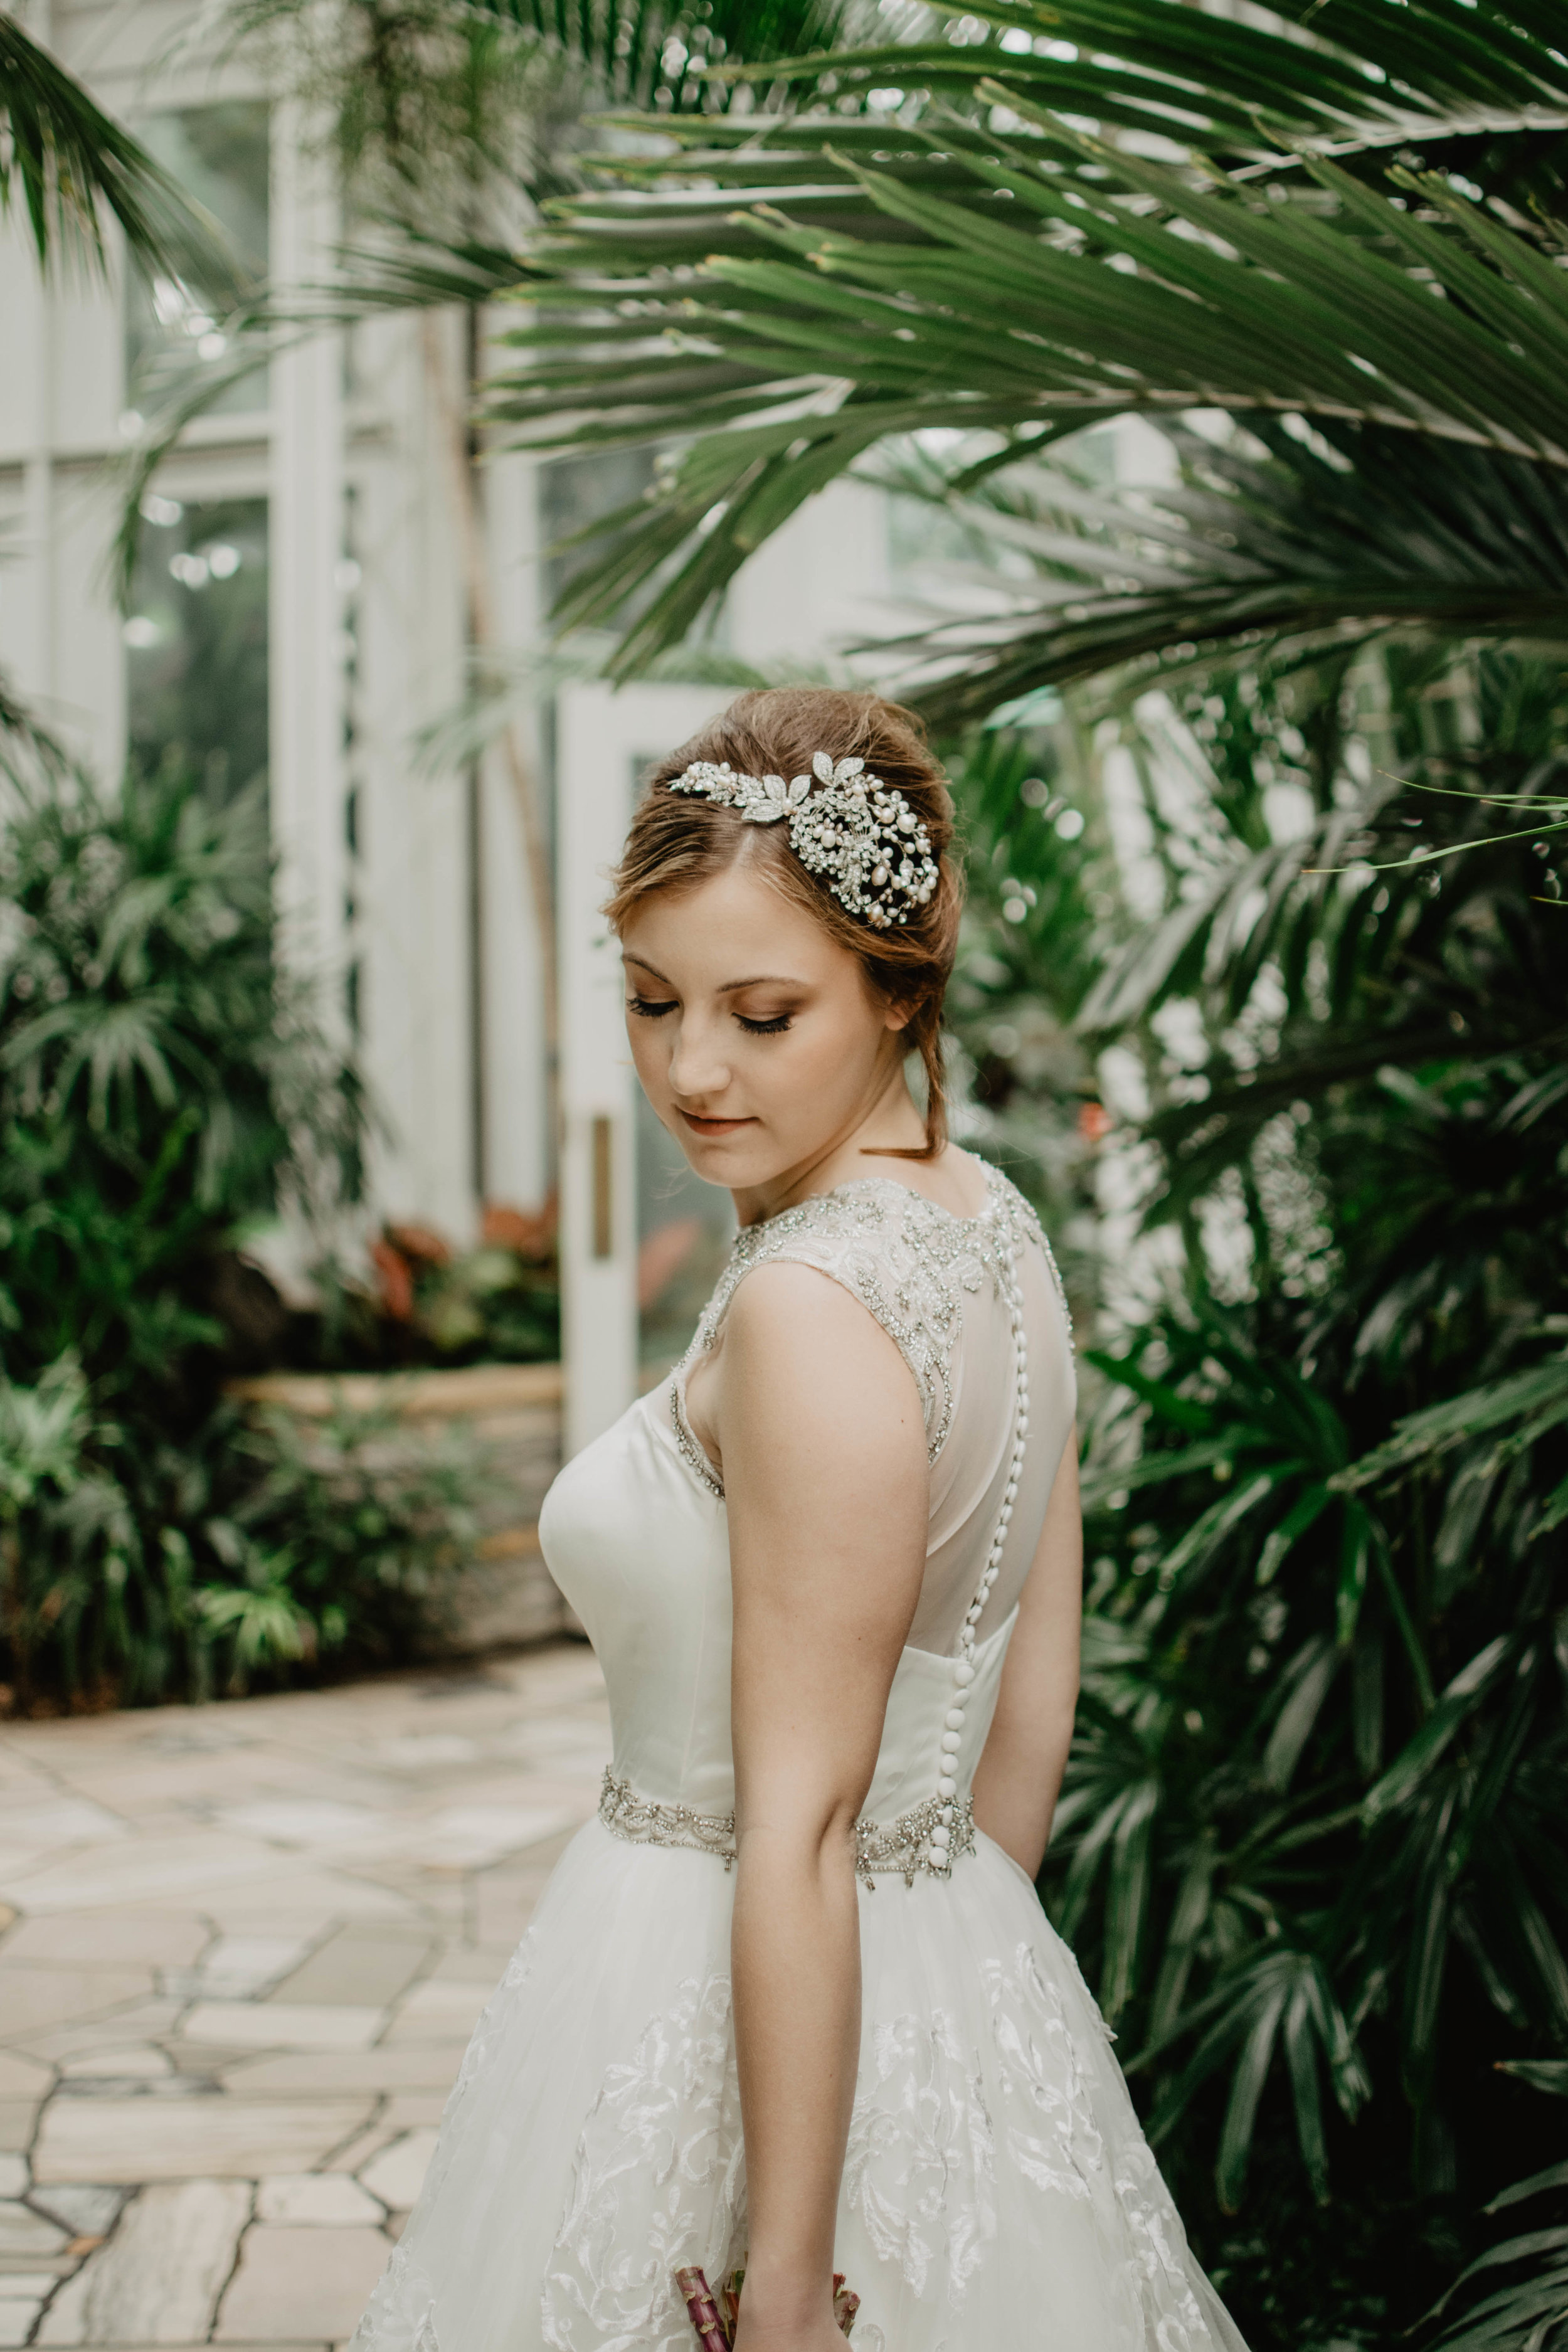 Brides - $110 + For Bridal Updo including Veil